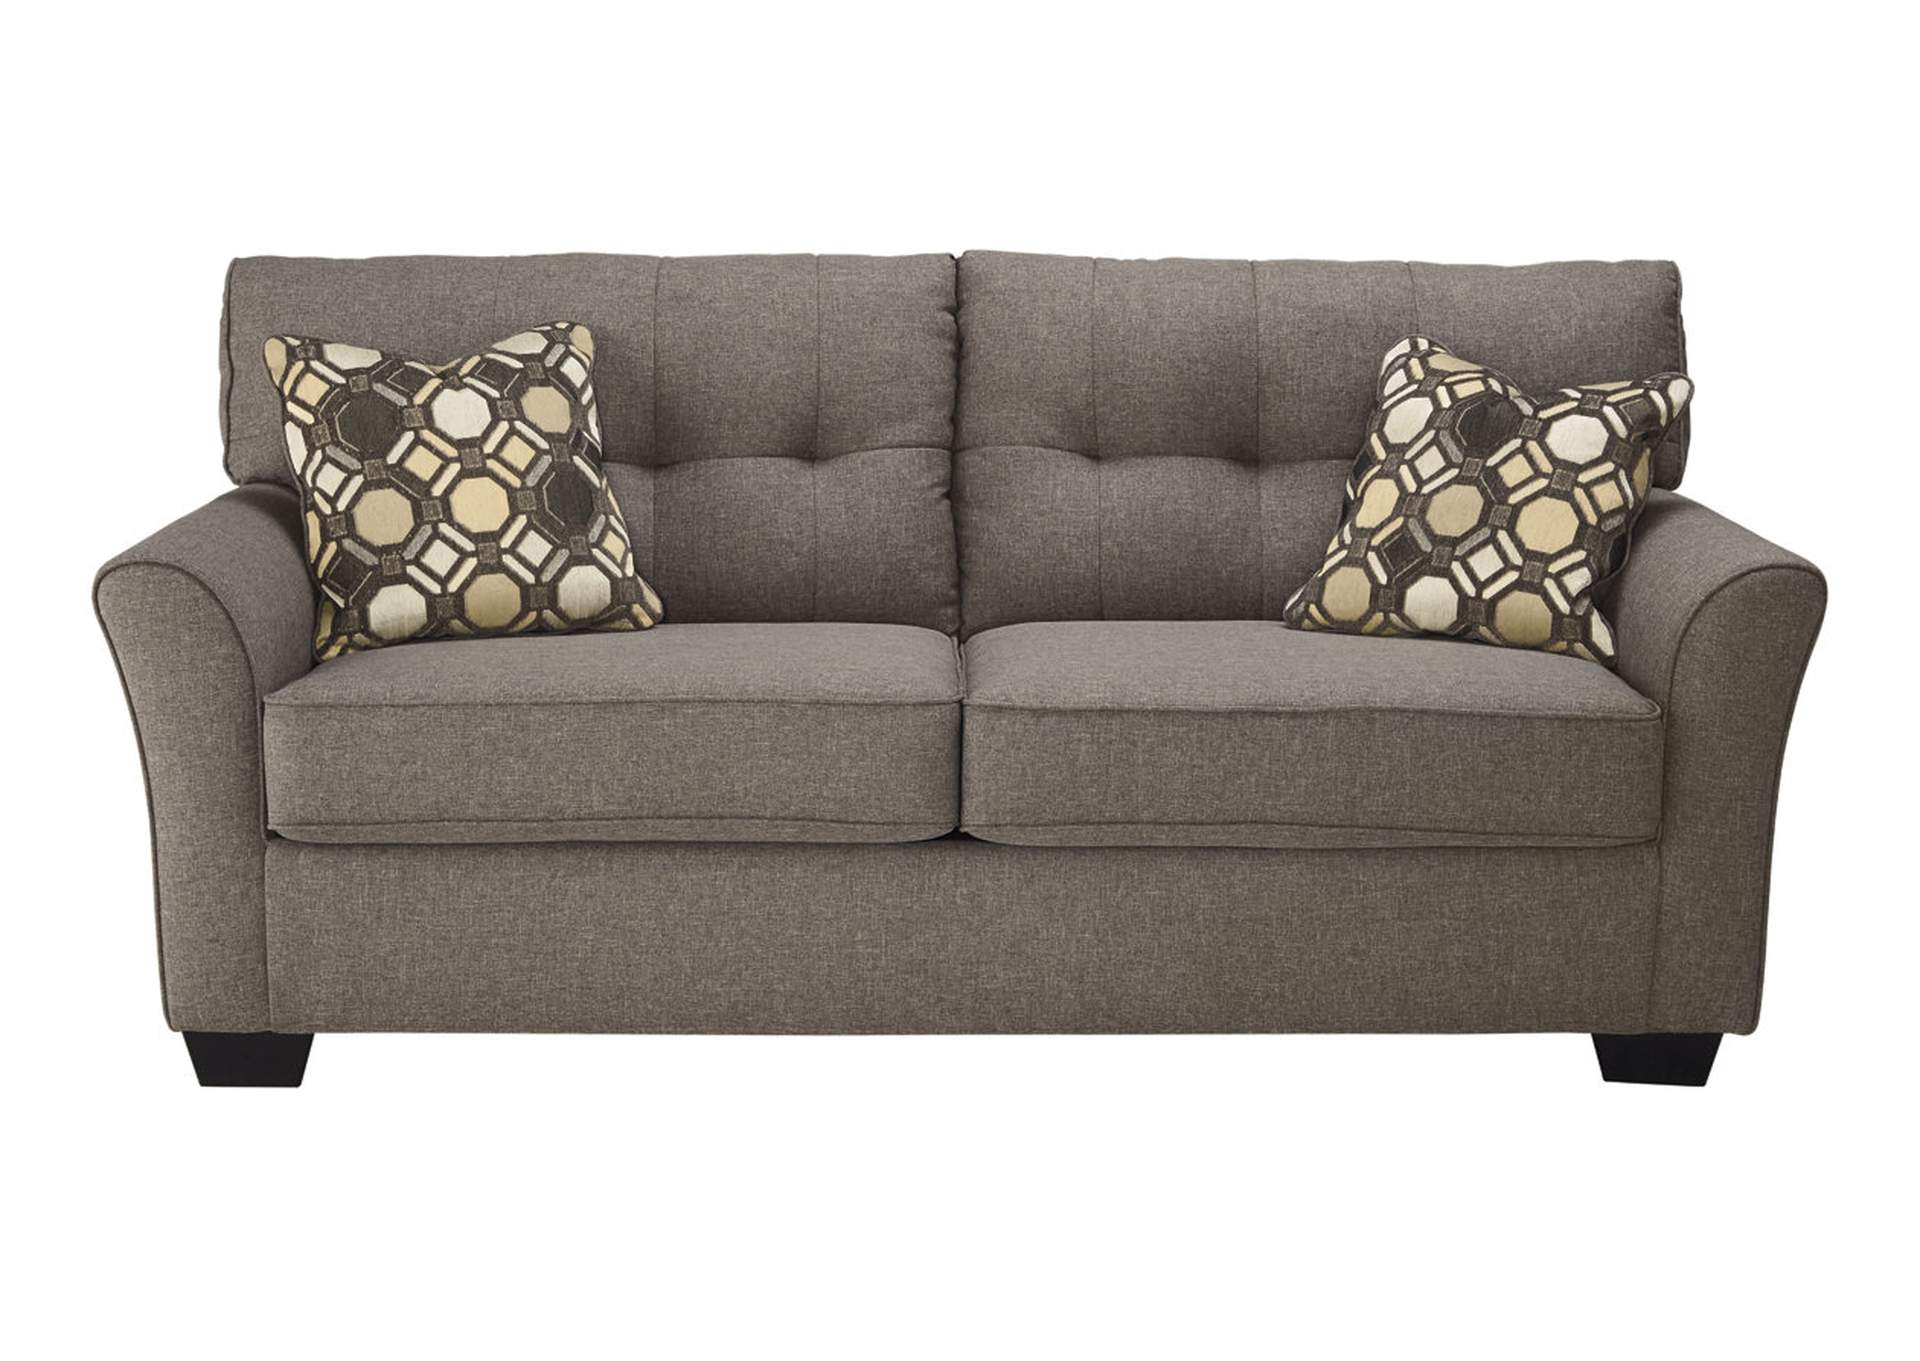 Tibbee Slate Sofa,Signature Design By Ashley